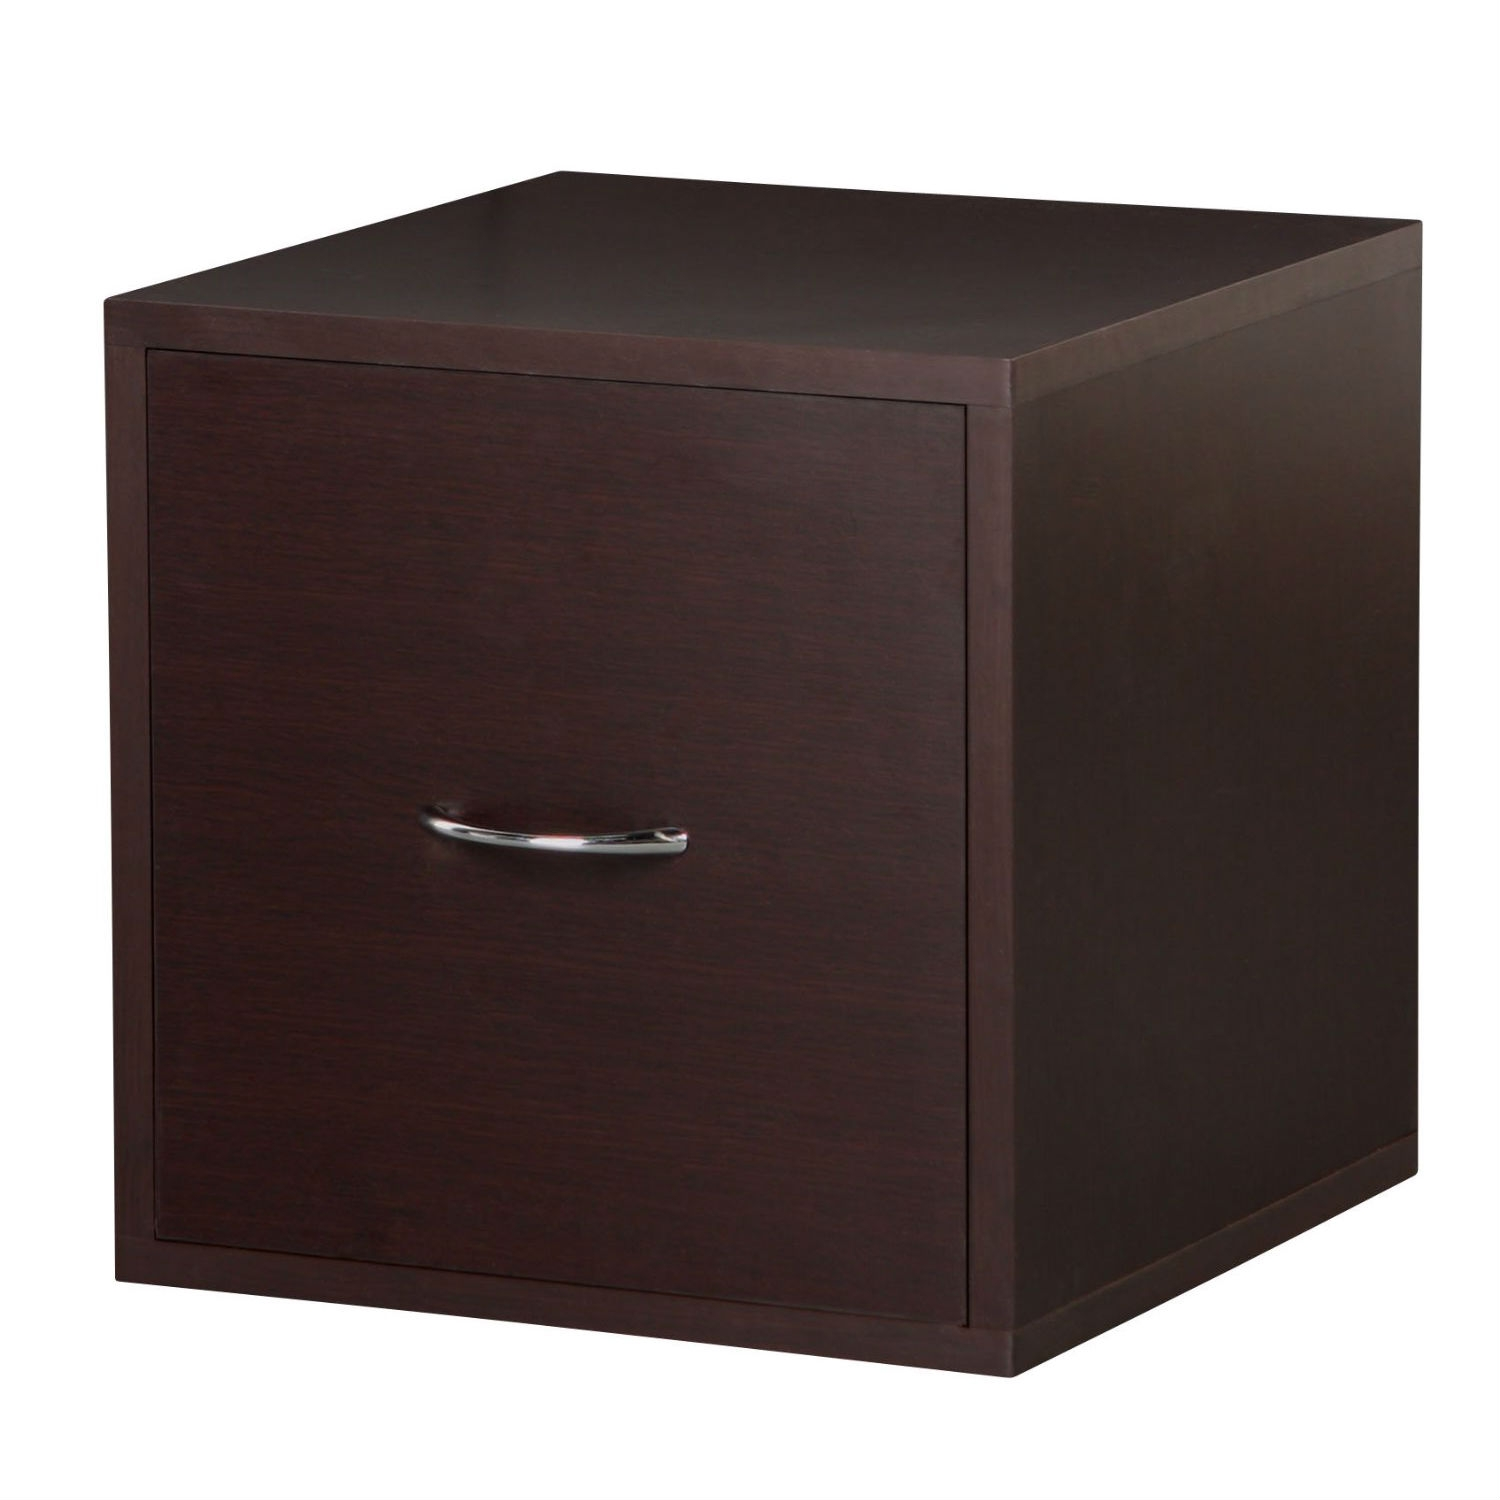 This Solid Wood Frame Modular File Cabinet Storage Cube in Espresso is practical and functional. Perfect for the home office. Holds letter size hanging files. Easy sliding drawer. Overall size 15-inch W by 15-inch D by 15-inch H. Frame is made out of solid wood, each panel finished with PVC laminate. Sturdy and stackable for maximum durability. Holds up to 200-pounds per assembled unit. Hollow-core construction makes the cube weigh 50-percent less then traditional particle board. Packed pre-finished, easy assembly and installation. Unlimited combination options so you can create exactly the system you need. Packed pre-finished, easy assembly and installation.